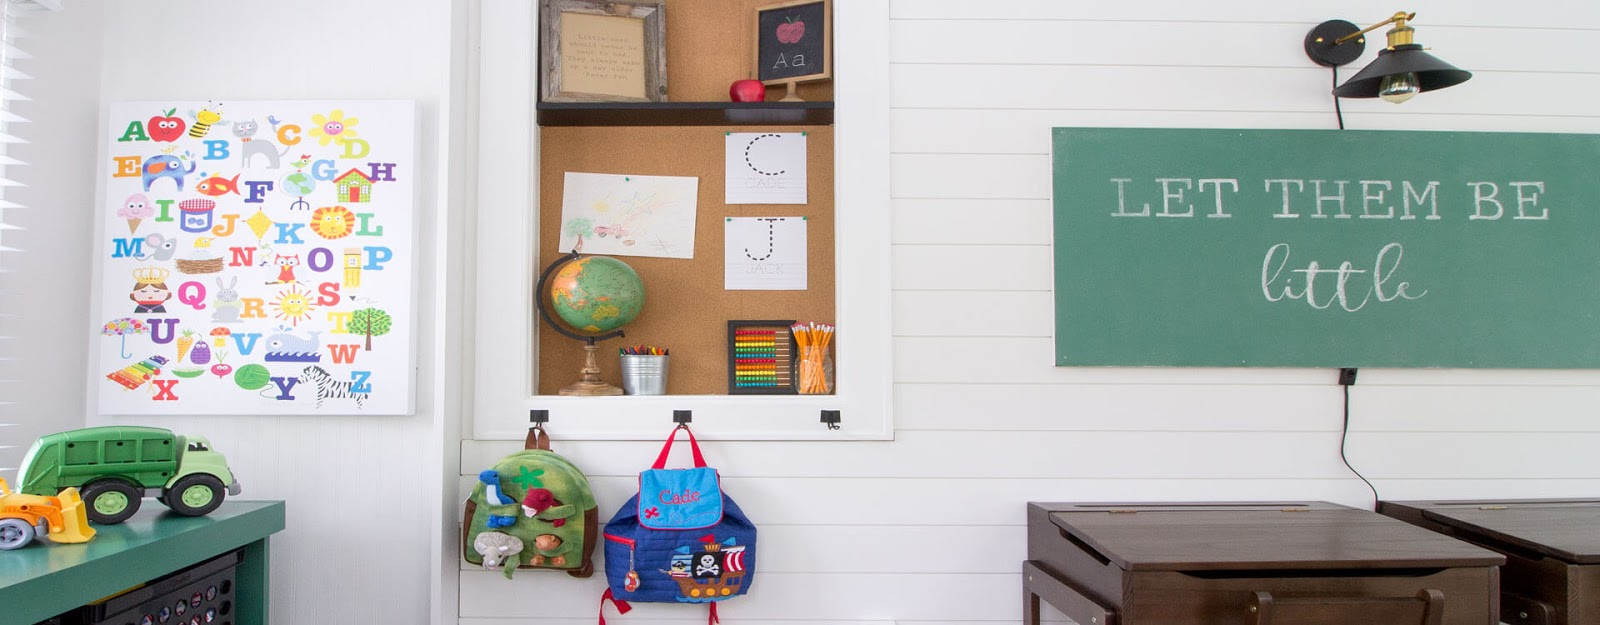 Modern Vintage Schoolhouse Playroom Reveal | The Inspired Hive